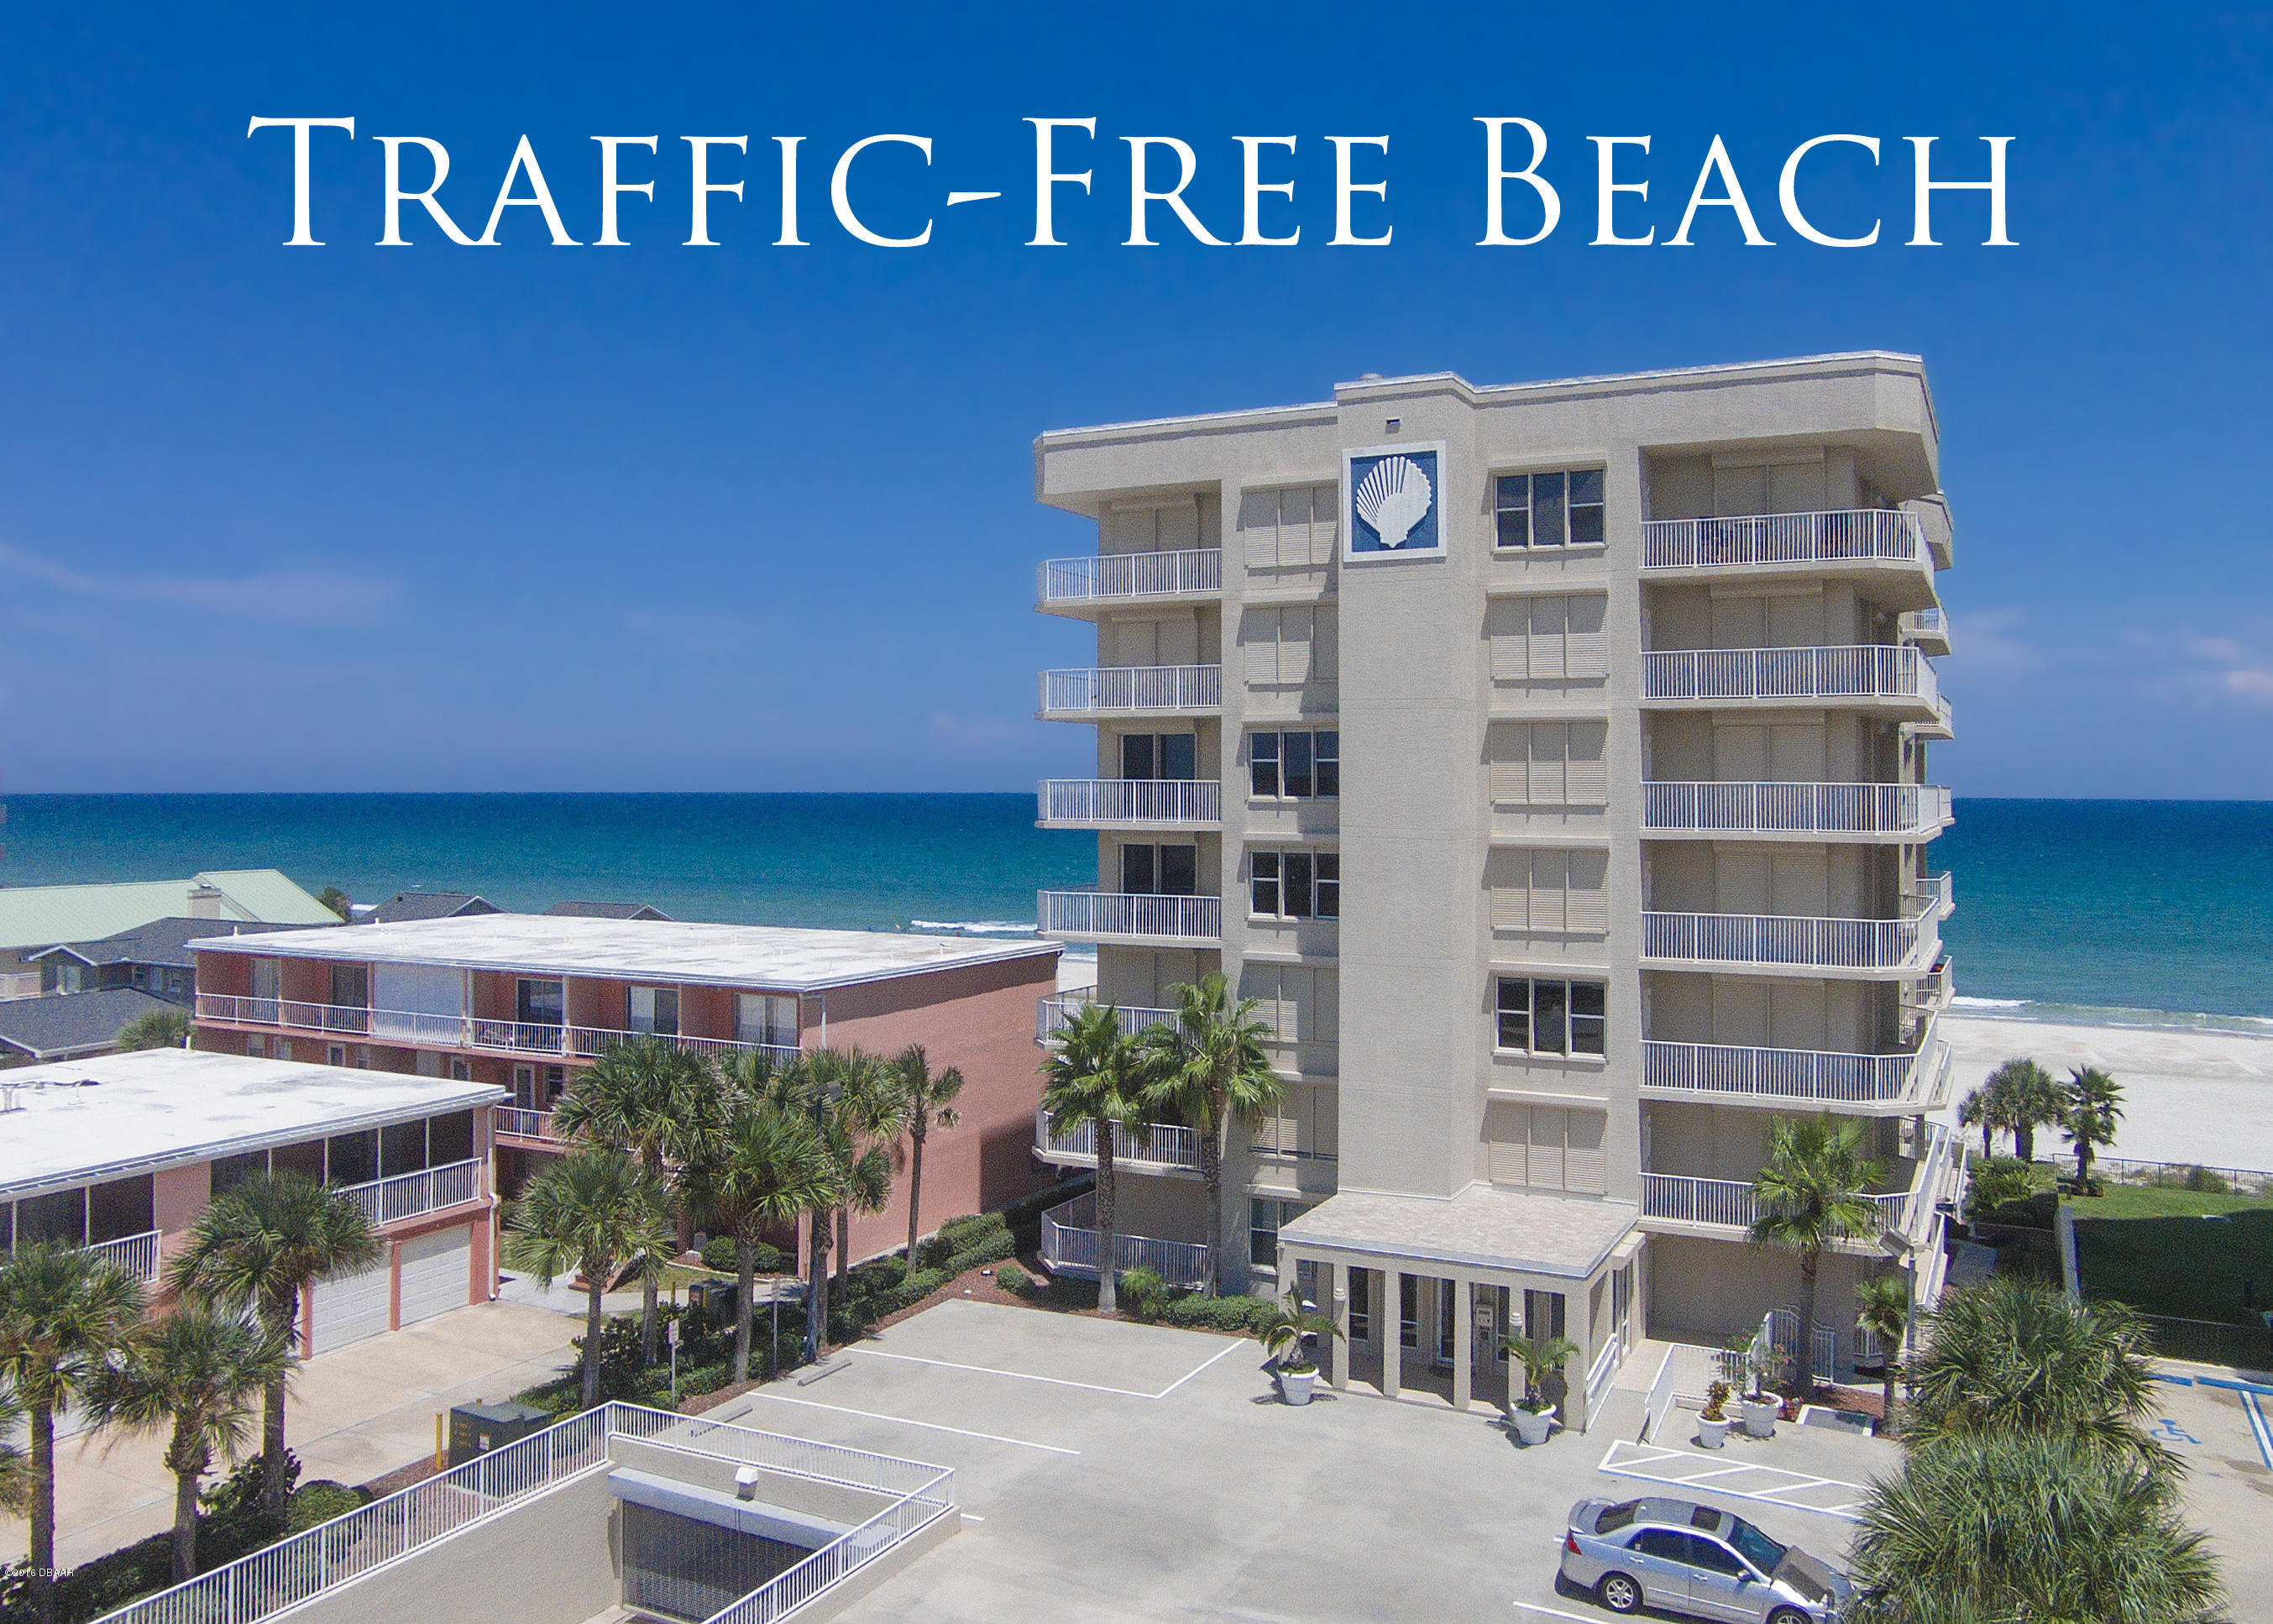 3851 S Atlantic Avenue, Daytona Beach Shores, Florida